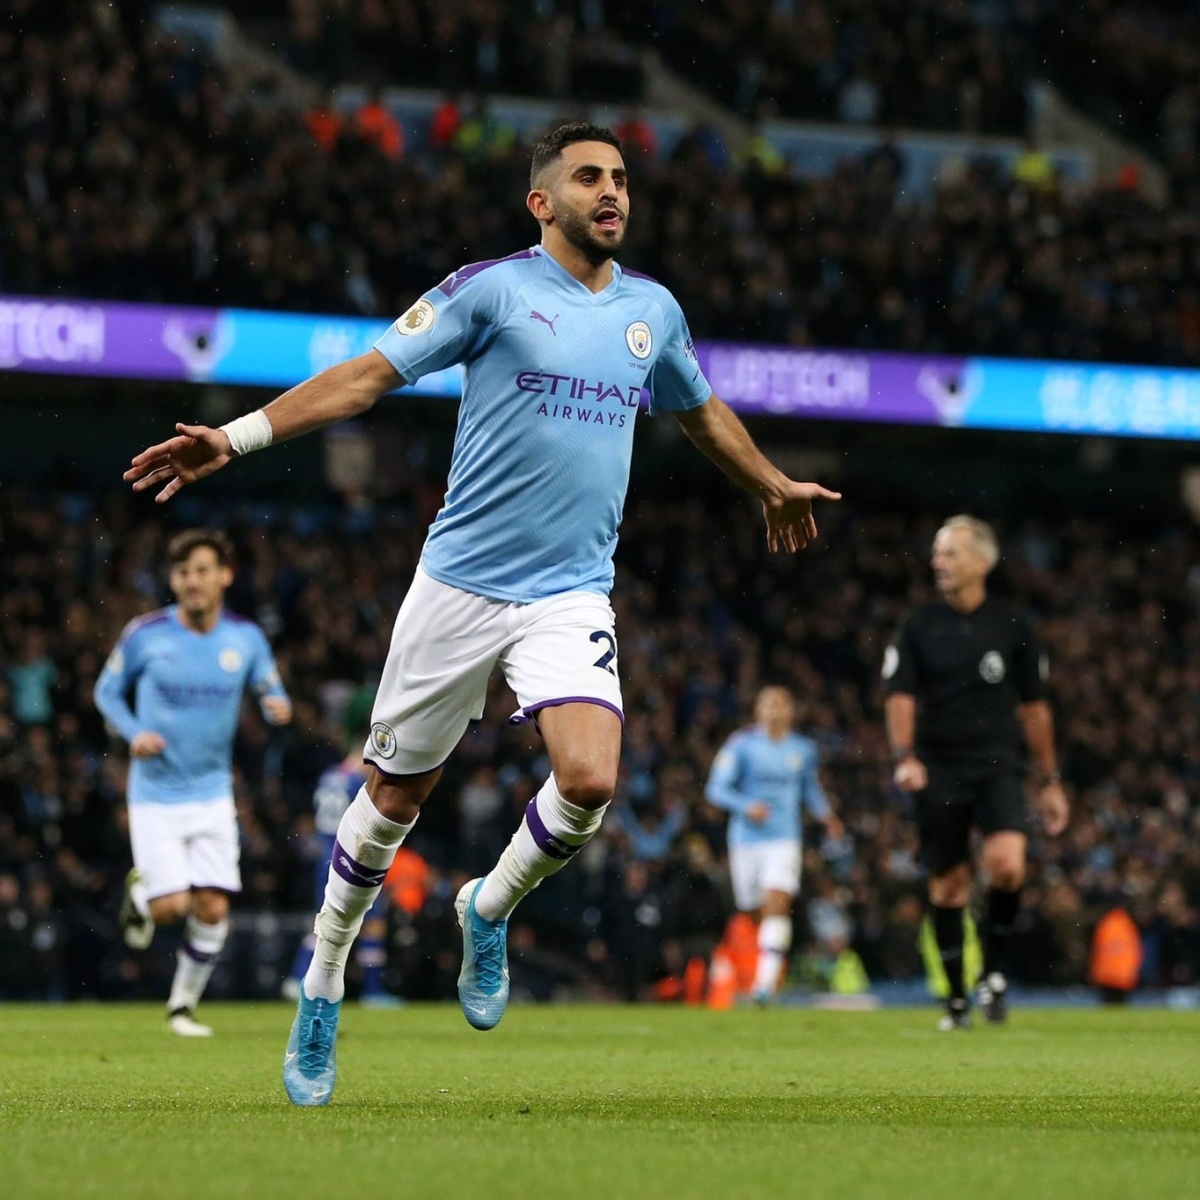 Thieves steal watches worth 300,000 pound from Manchester City's Riyad Mahrez